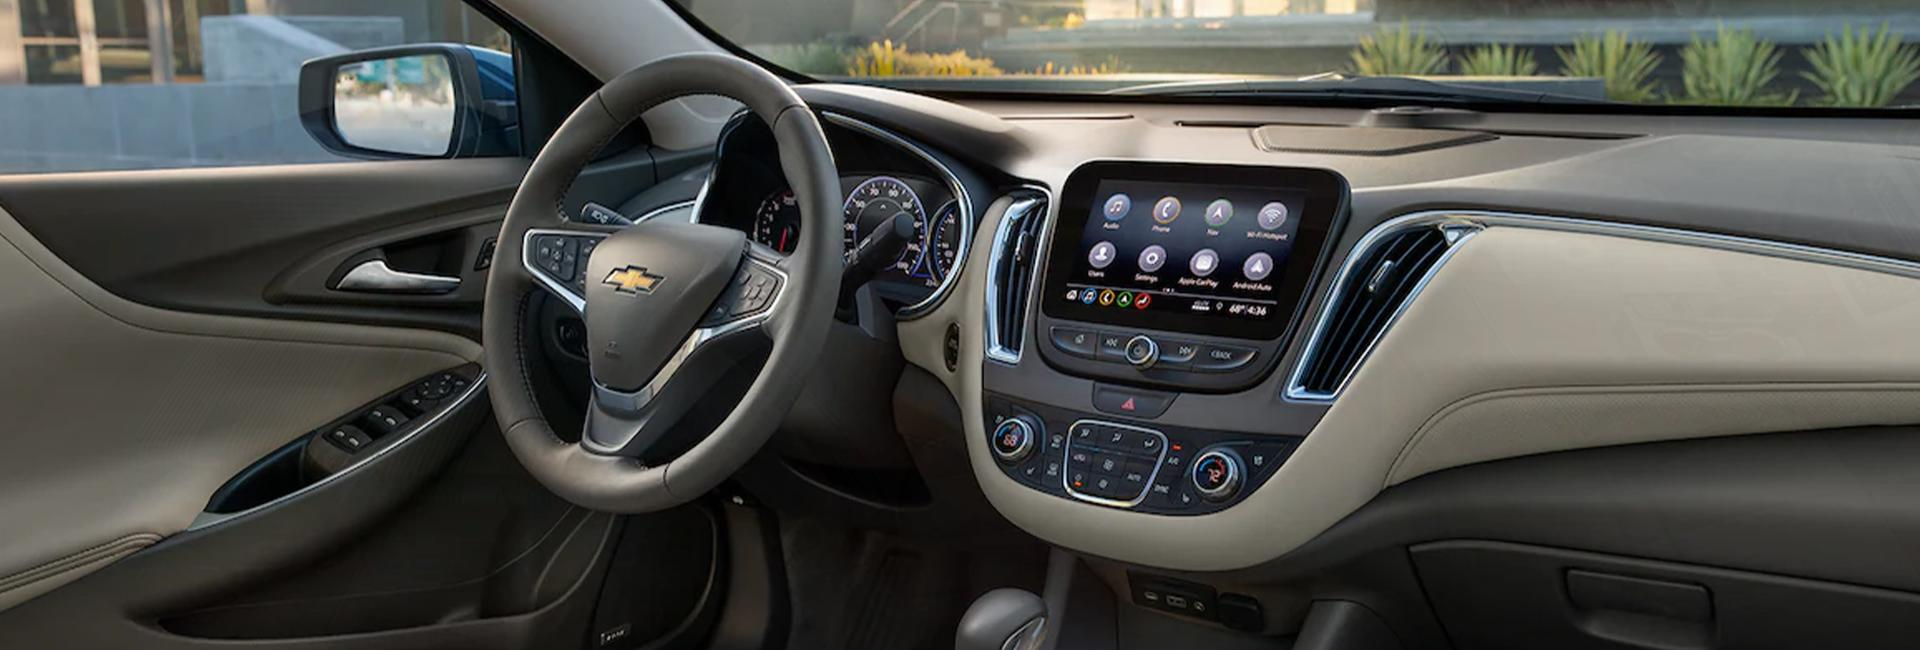 Close up view of a Chevy Malibu steering wheel and dashboard